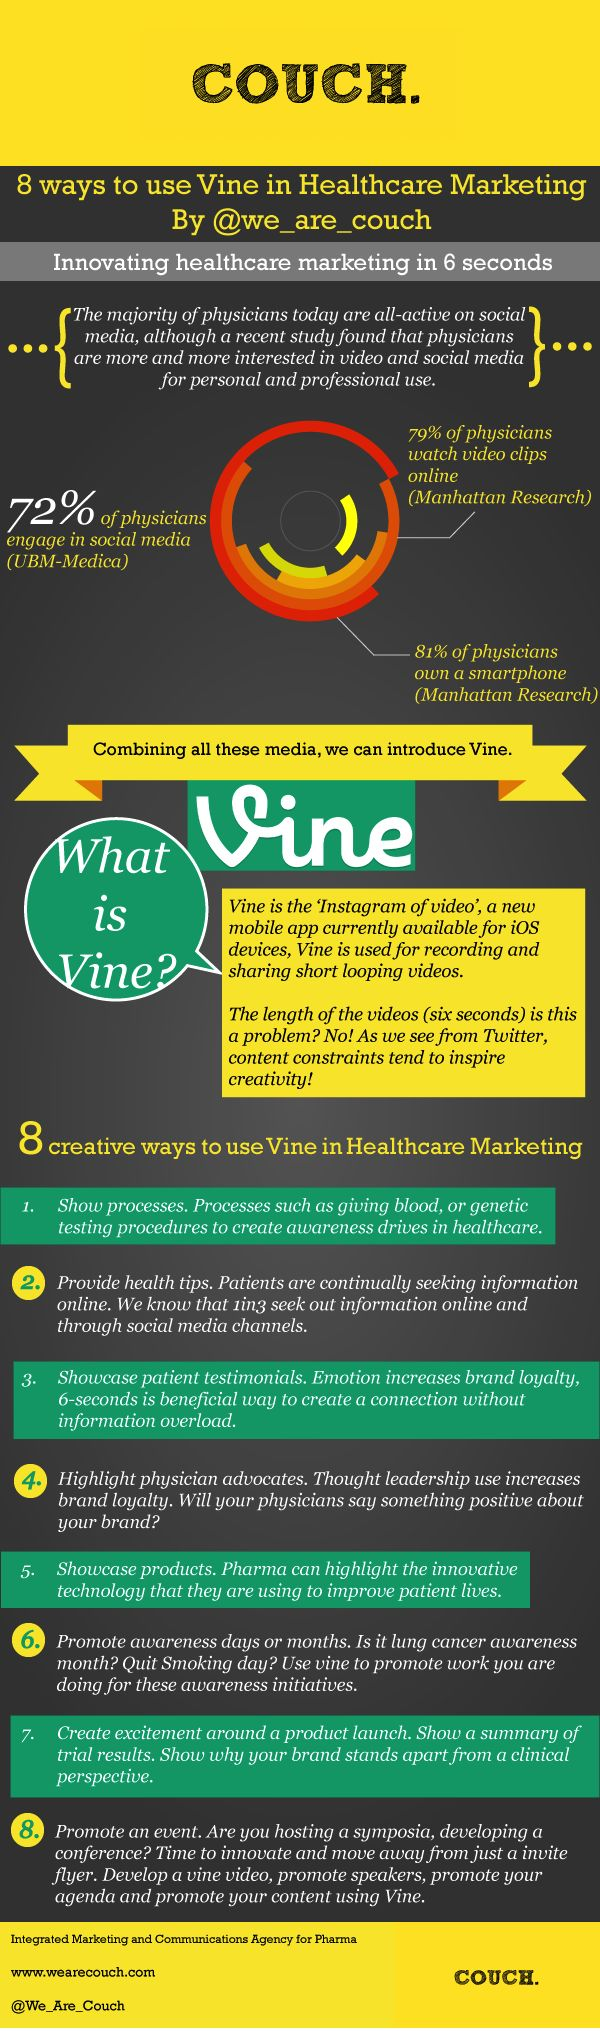 Infographic: 8 ways to use Vine in Healthcare Marketing – COUCH.